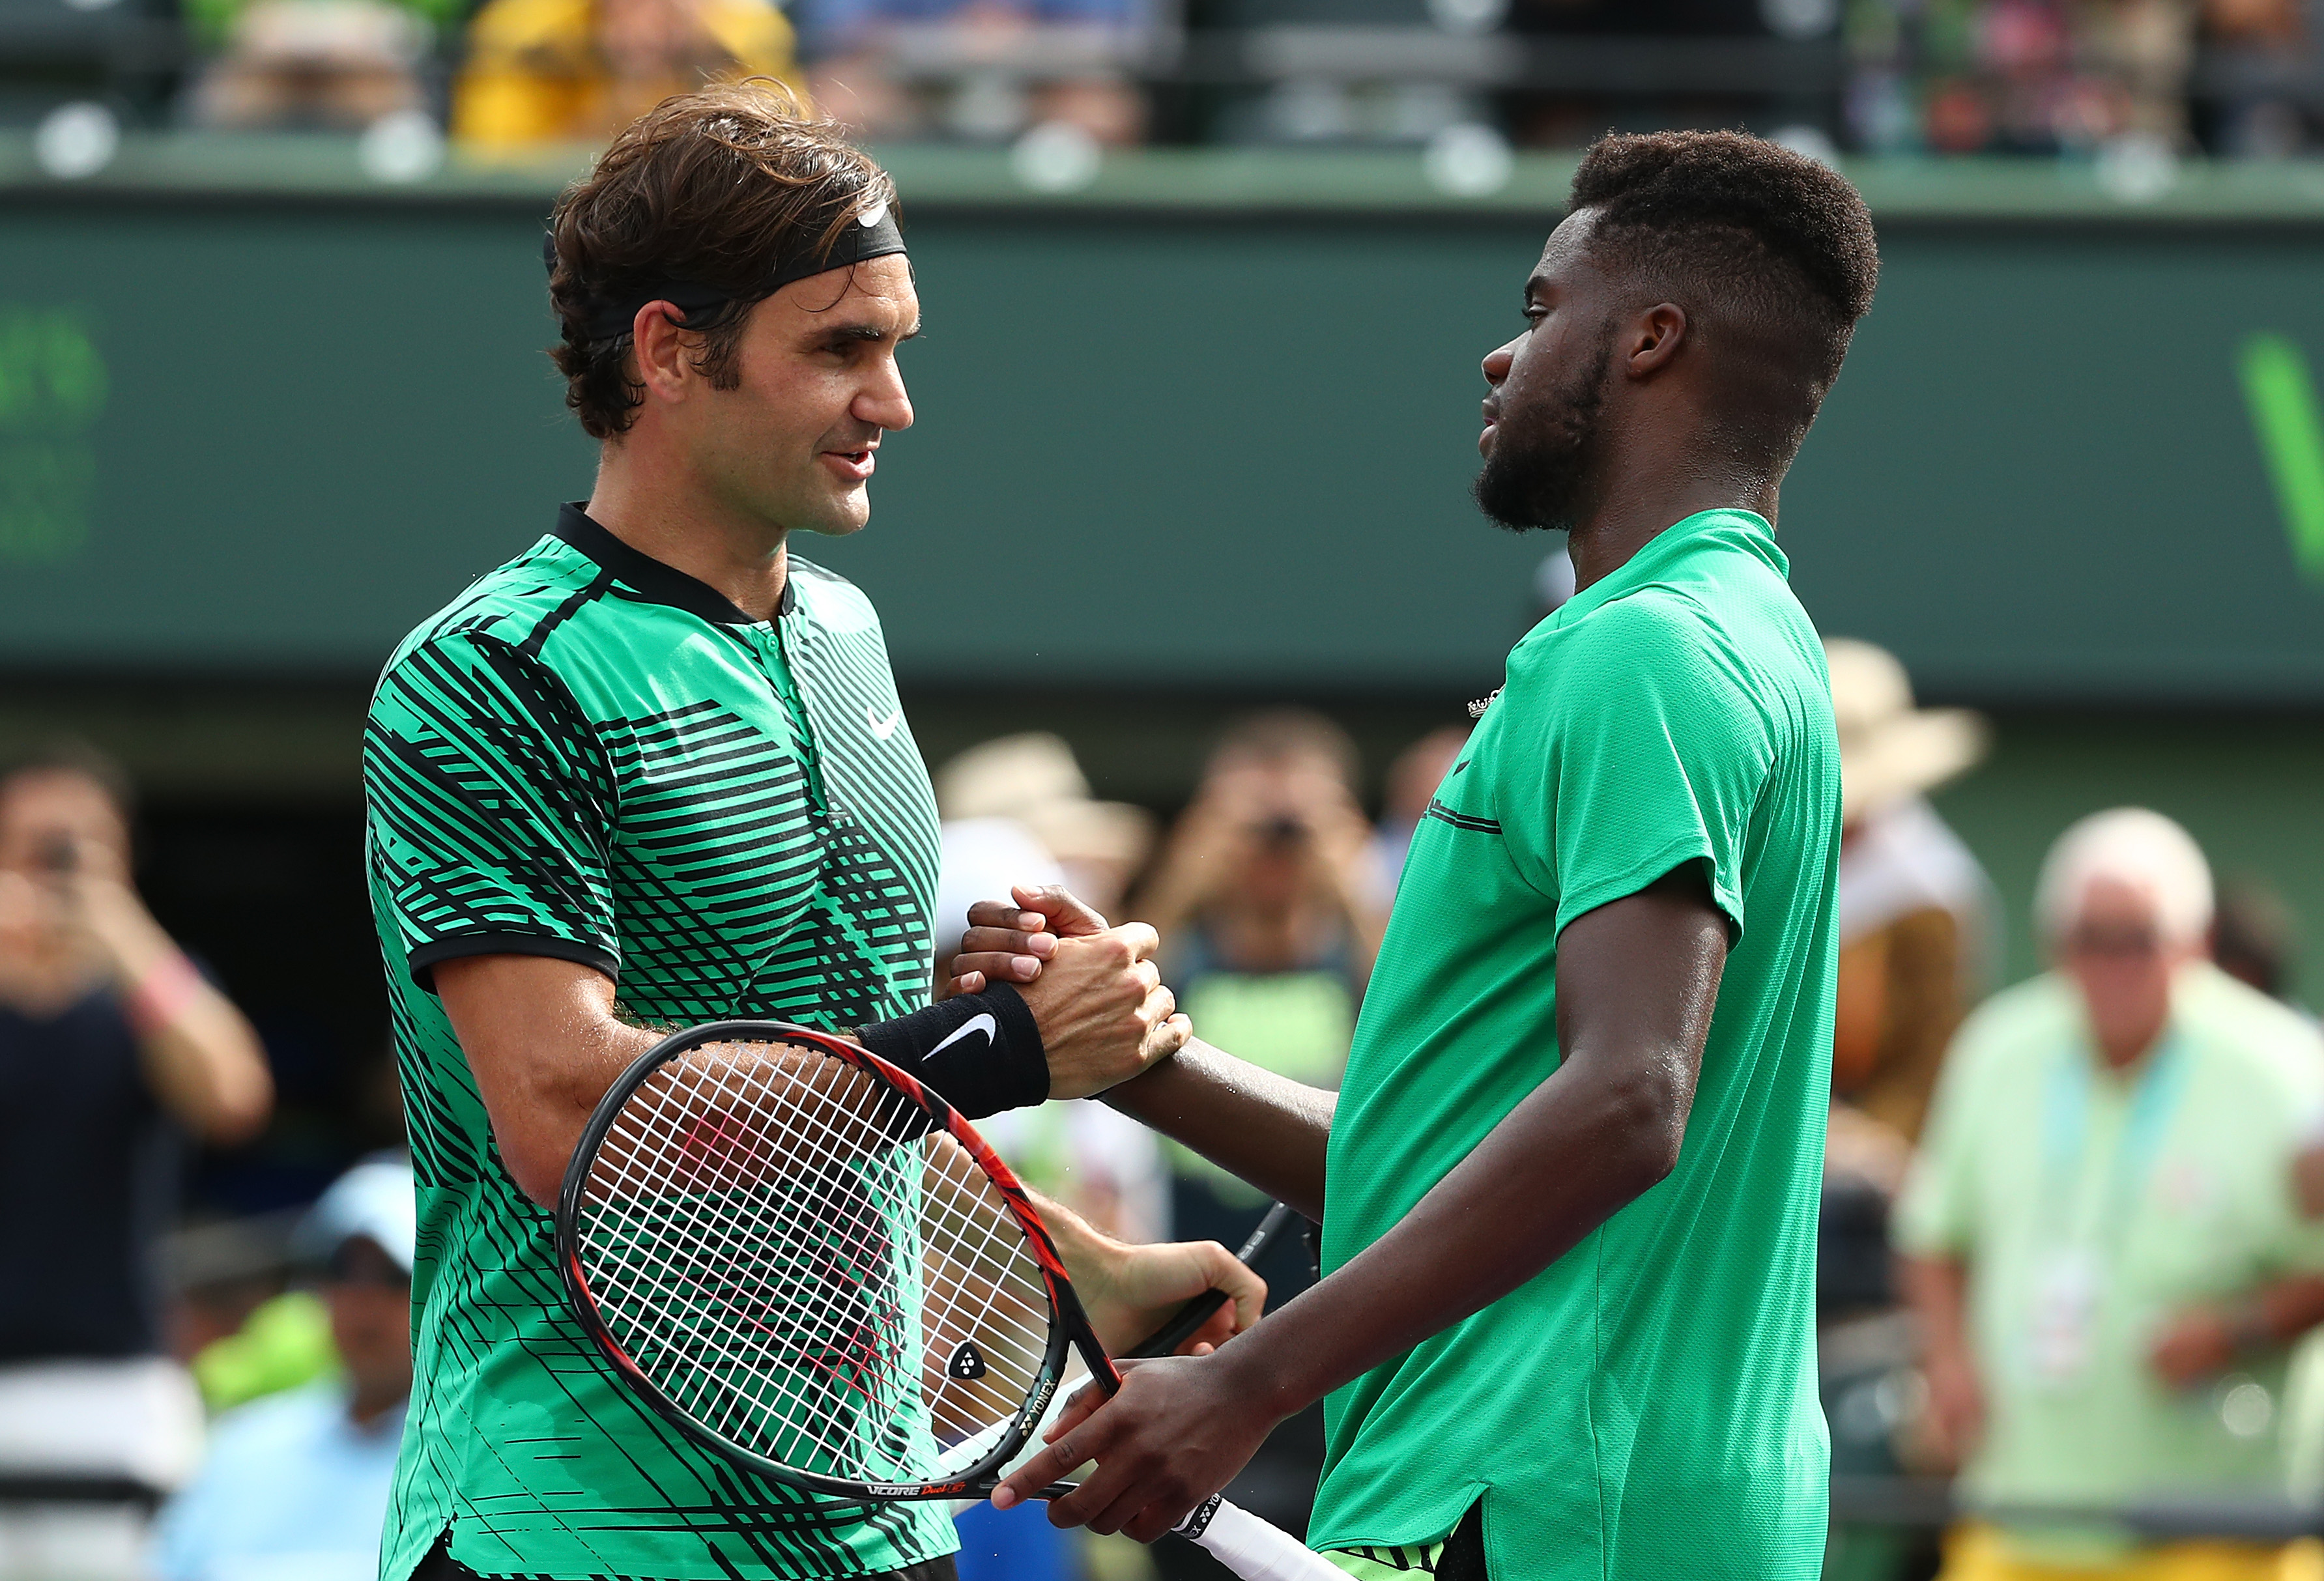 Federer, Wawrinka advance in Miami